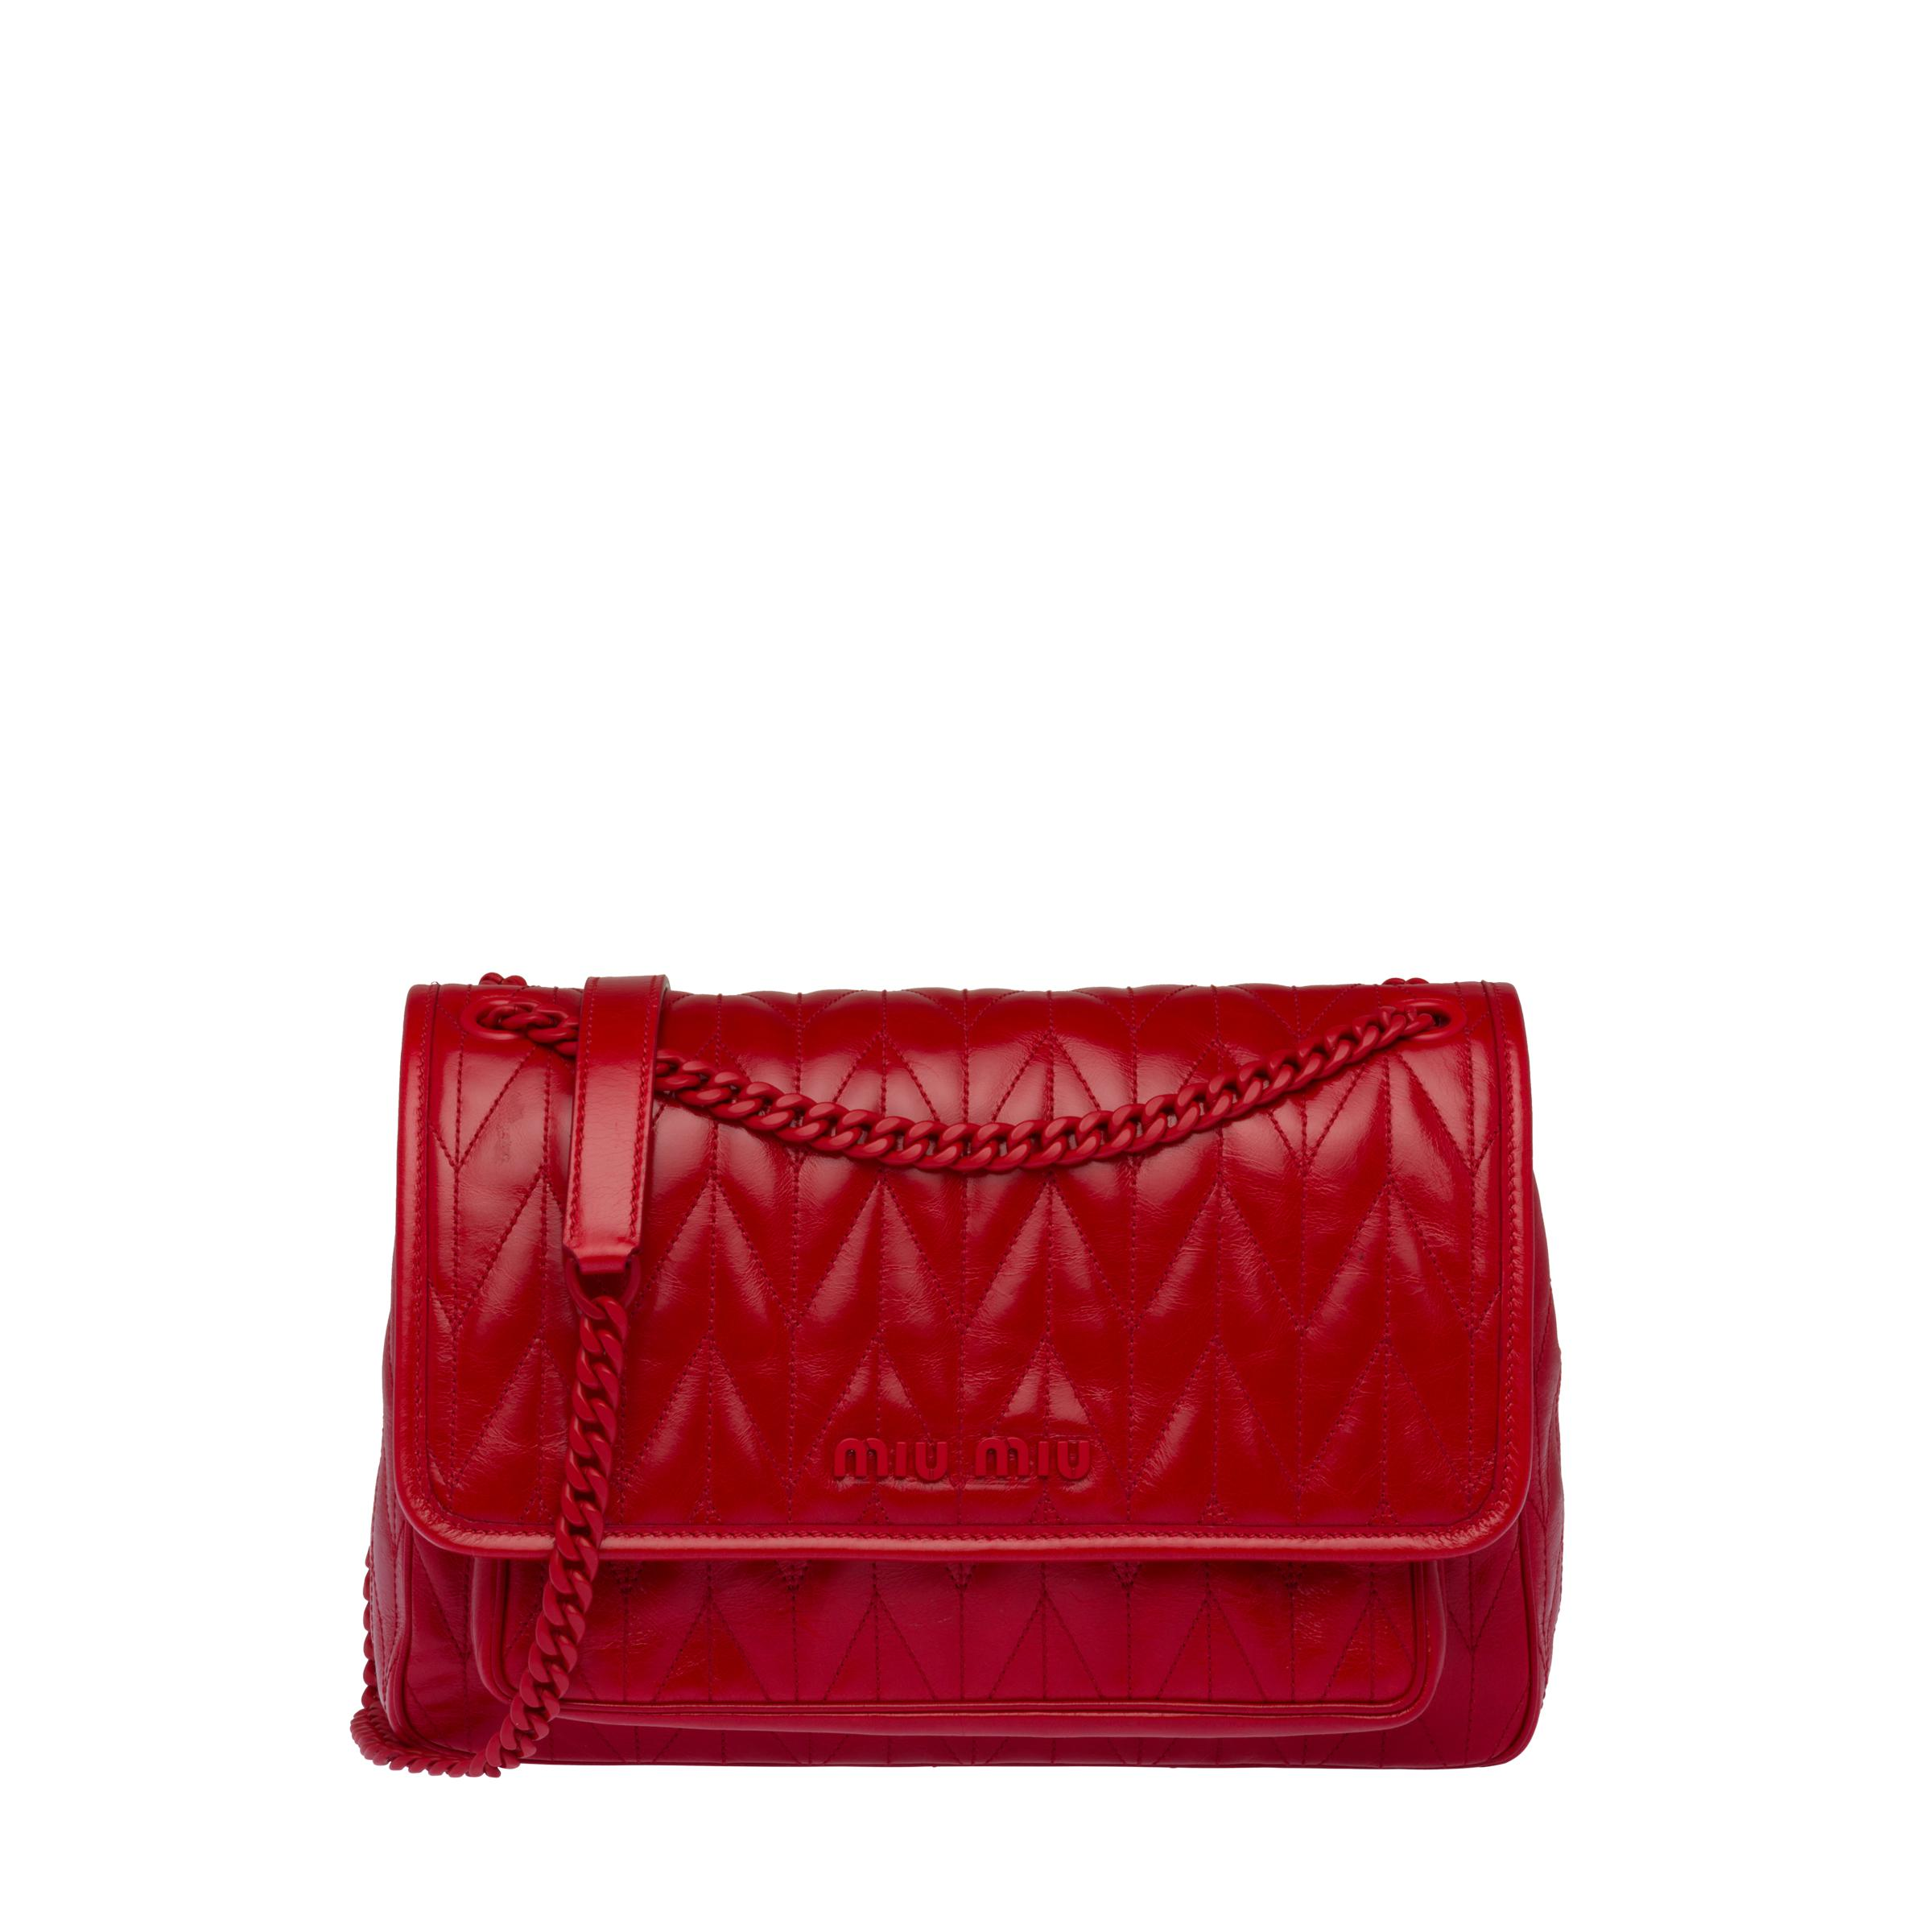 Quilted Shiny Leather Shoulder Bag Women Red